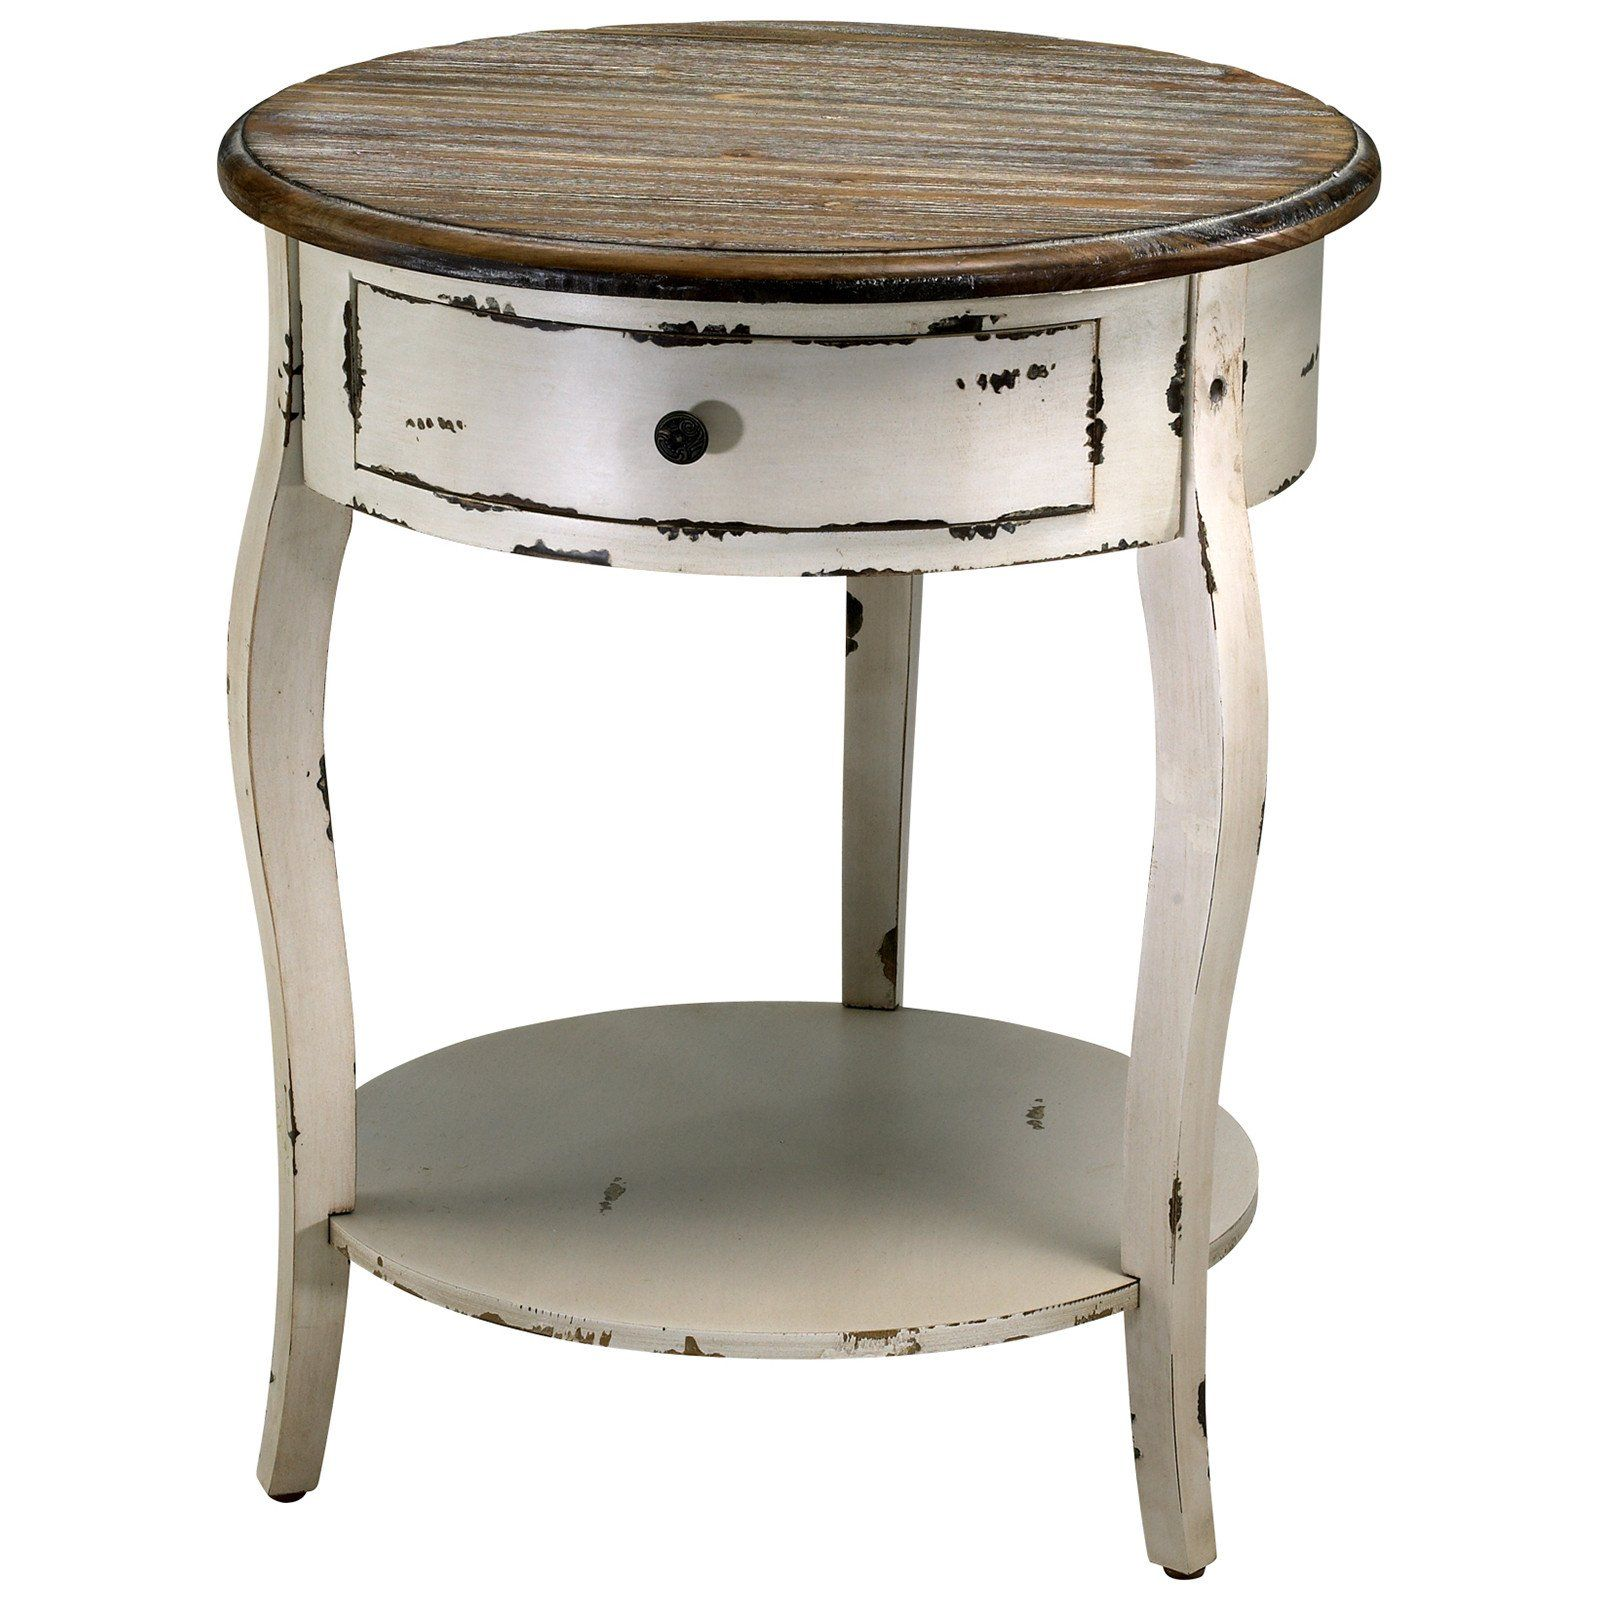 abelard side table distressed white and gray products round rustic accent black glass outdoor pub style chairs bunnings cushions candle decorations west elm dining room placemats